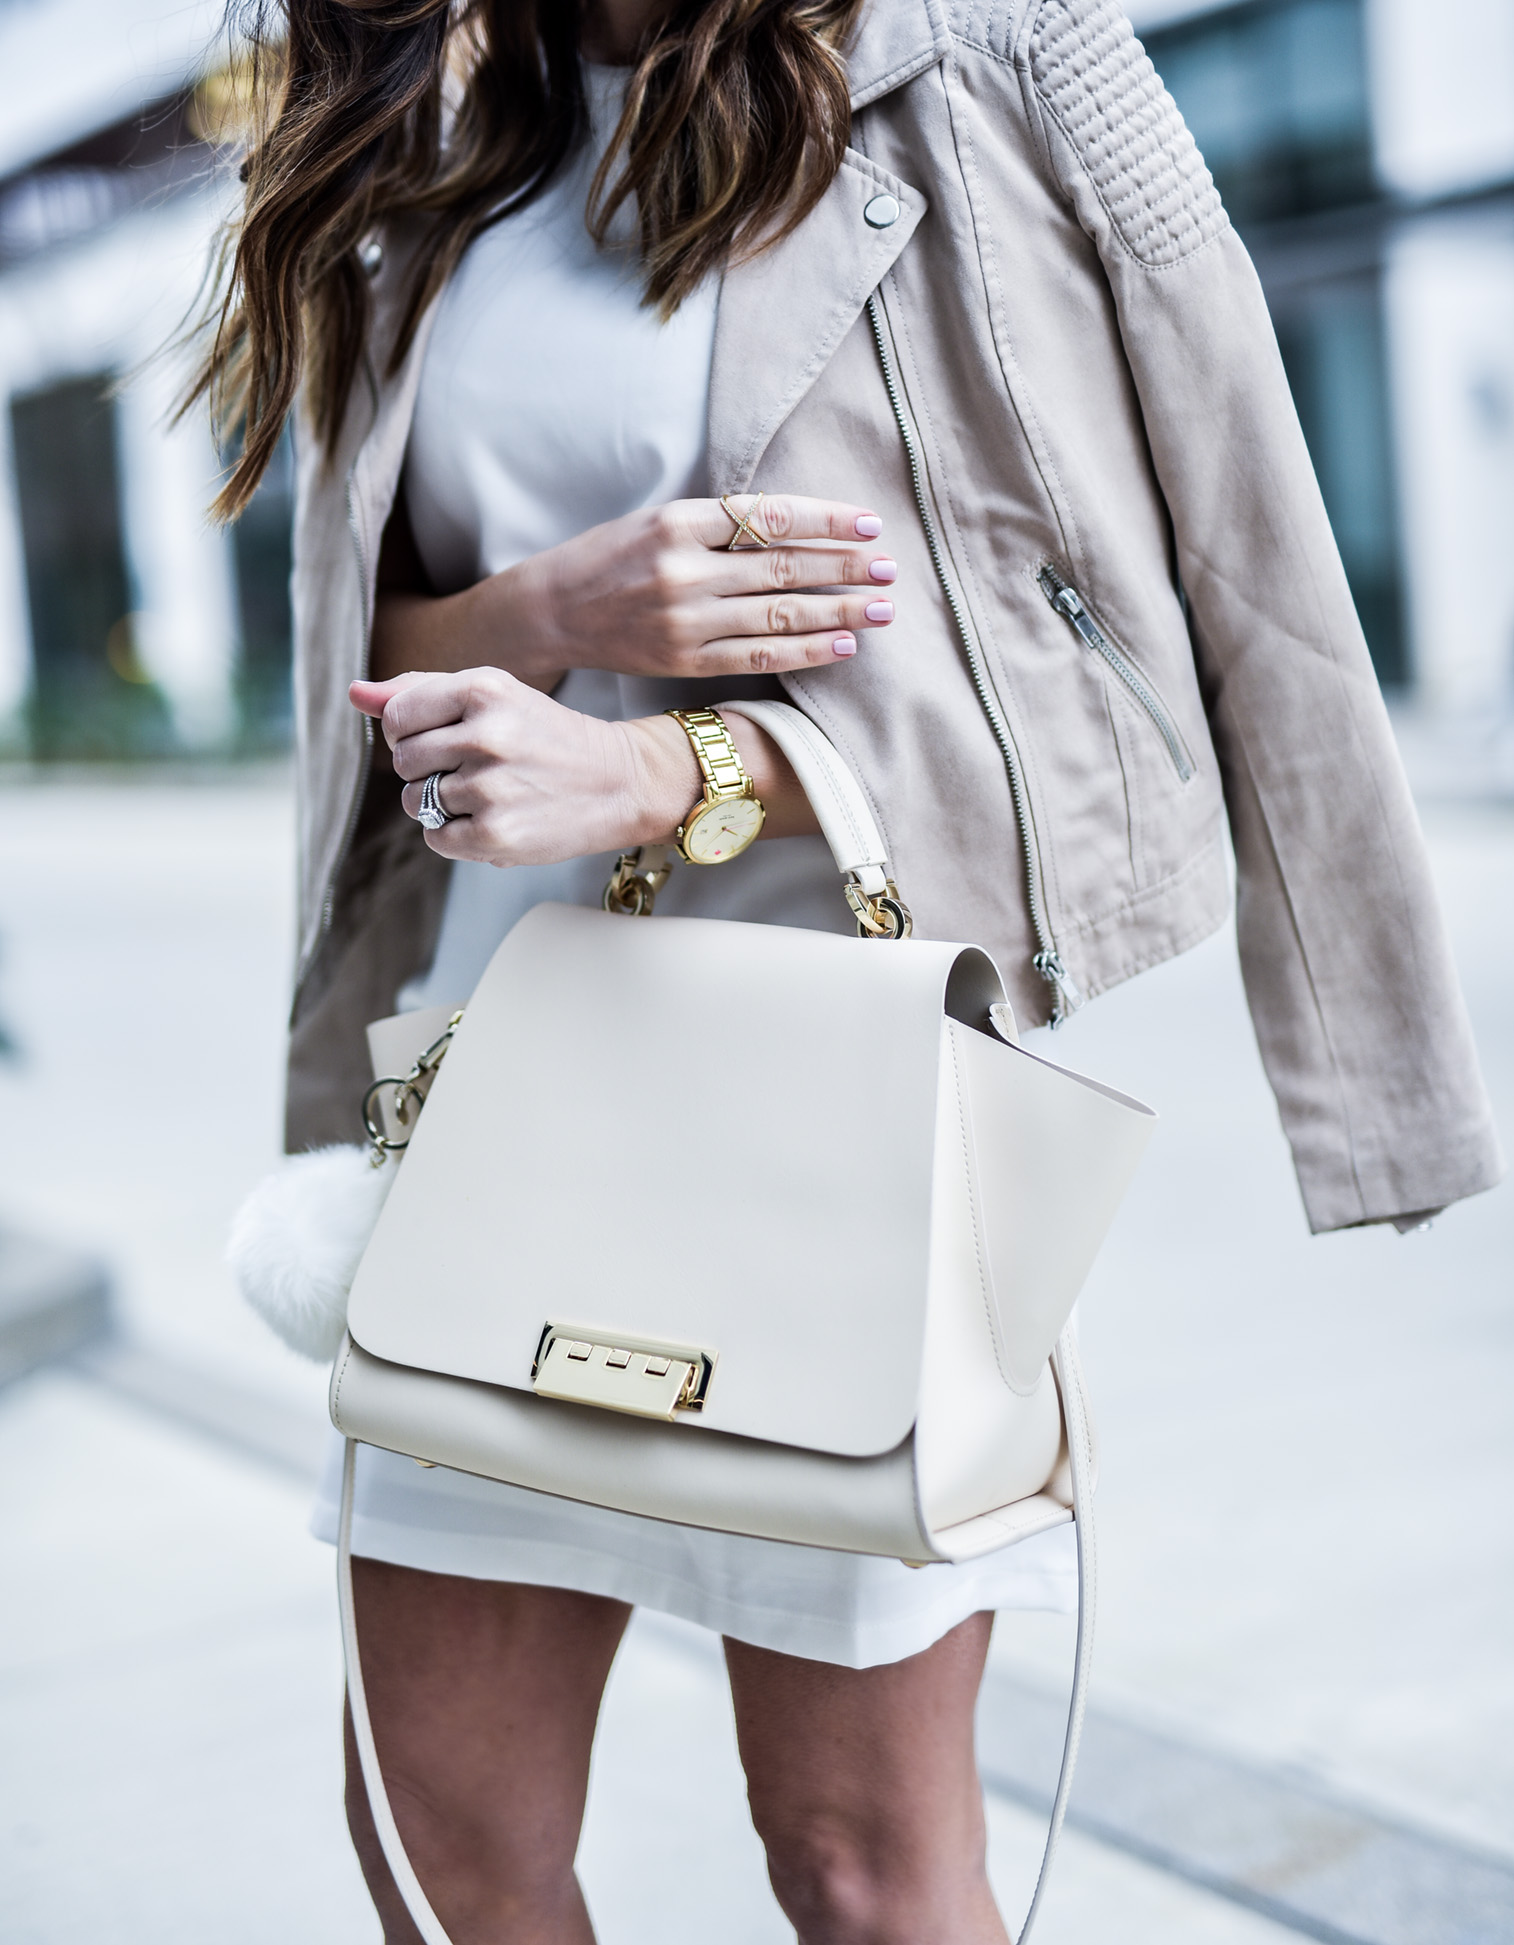 Timeless closet staples  Tiffany Jais Houston fashion and lifestyle blogger wearing a white shift dress from asos and steve madden slithur heels with a zac zac posen bag, click to read more